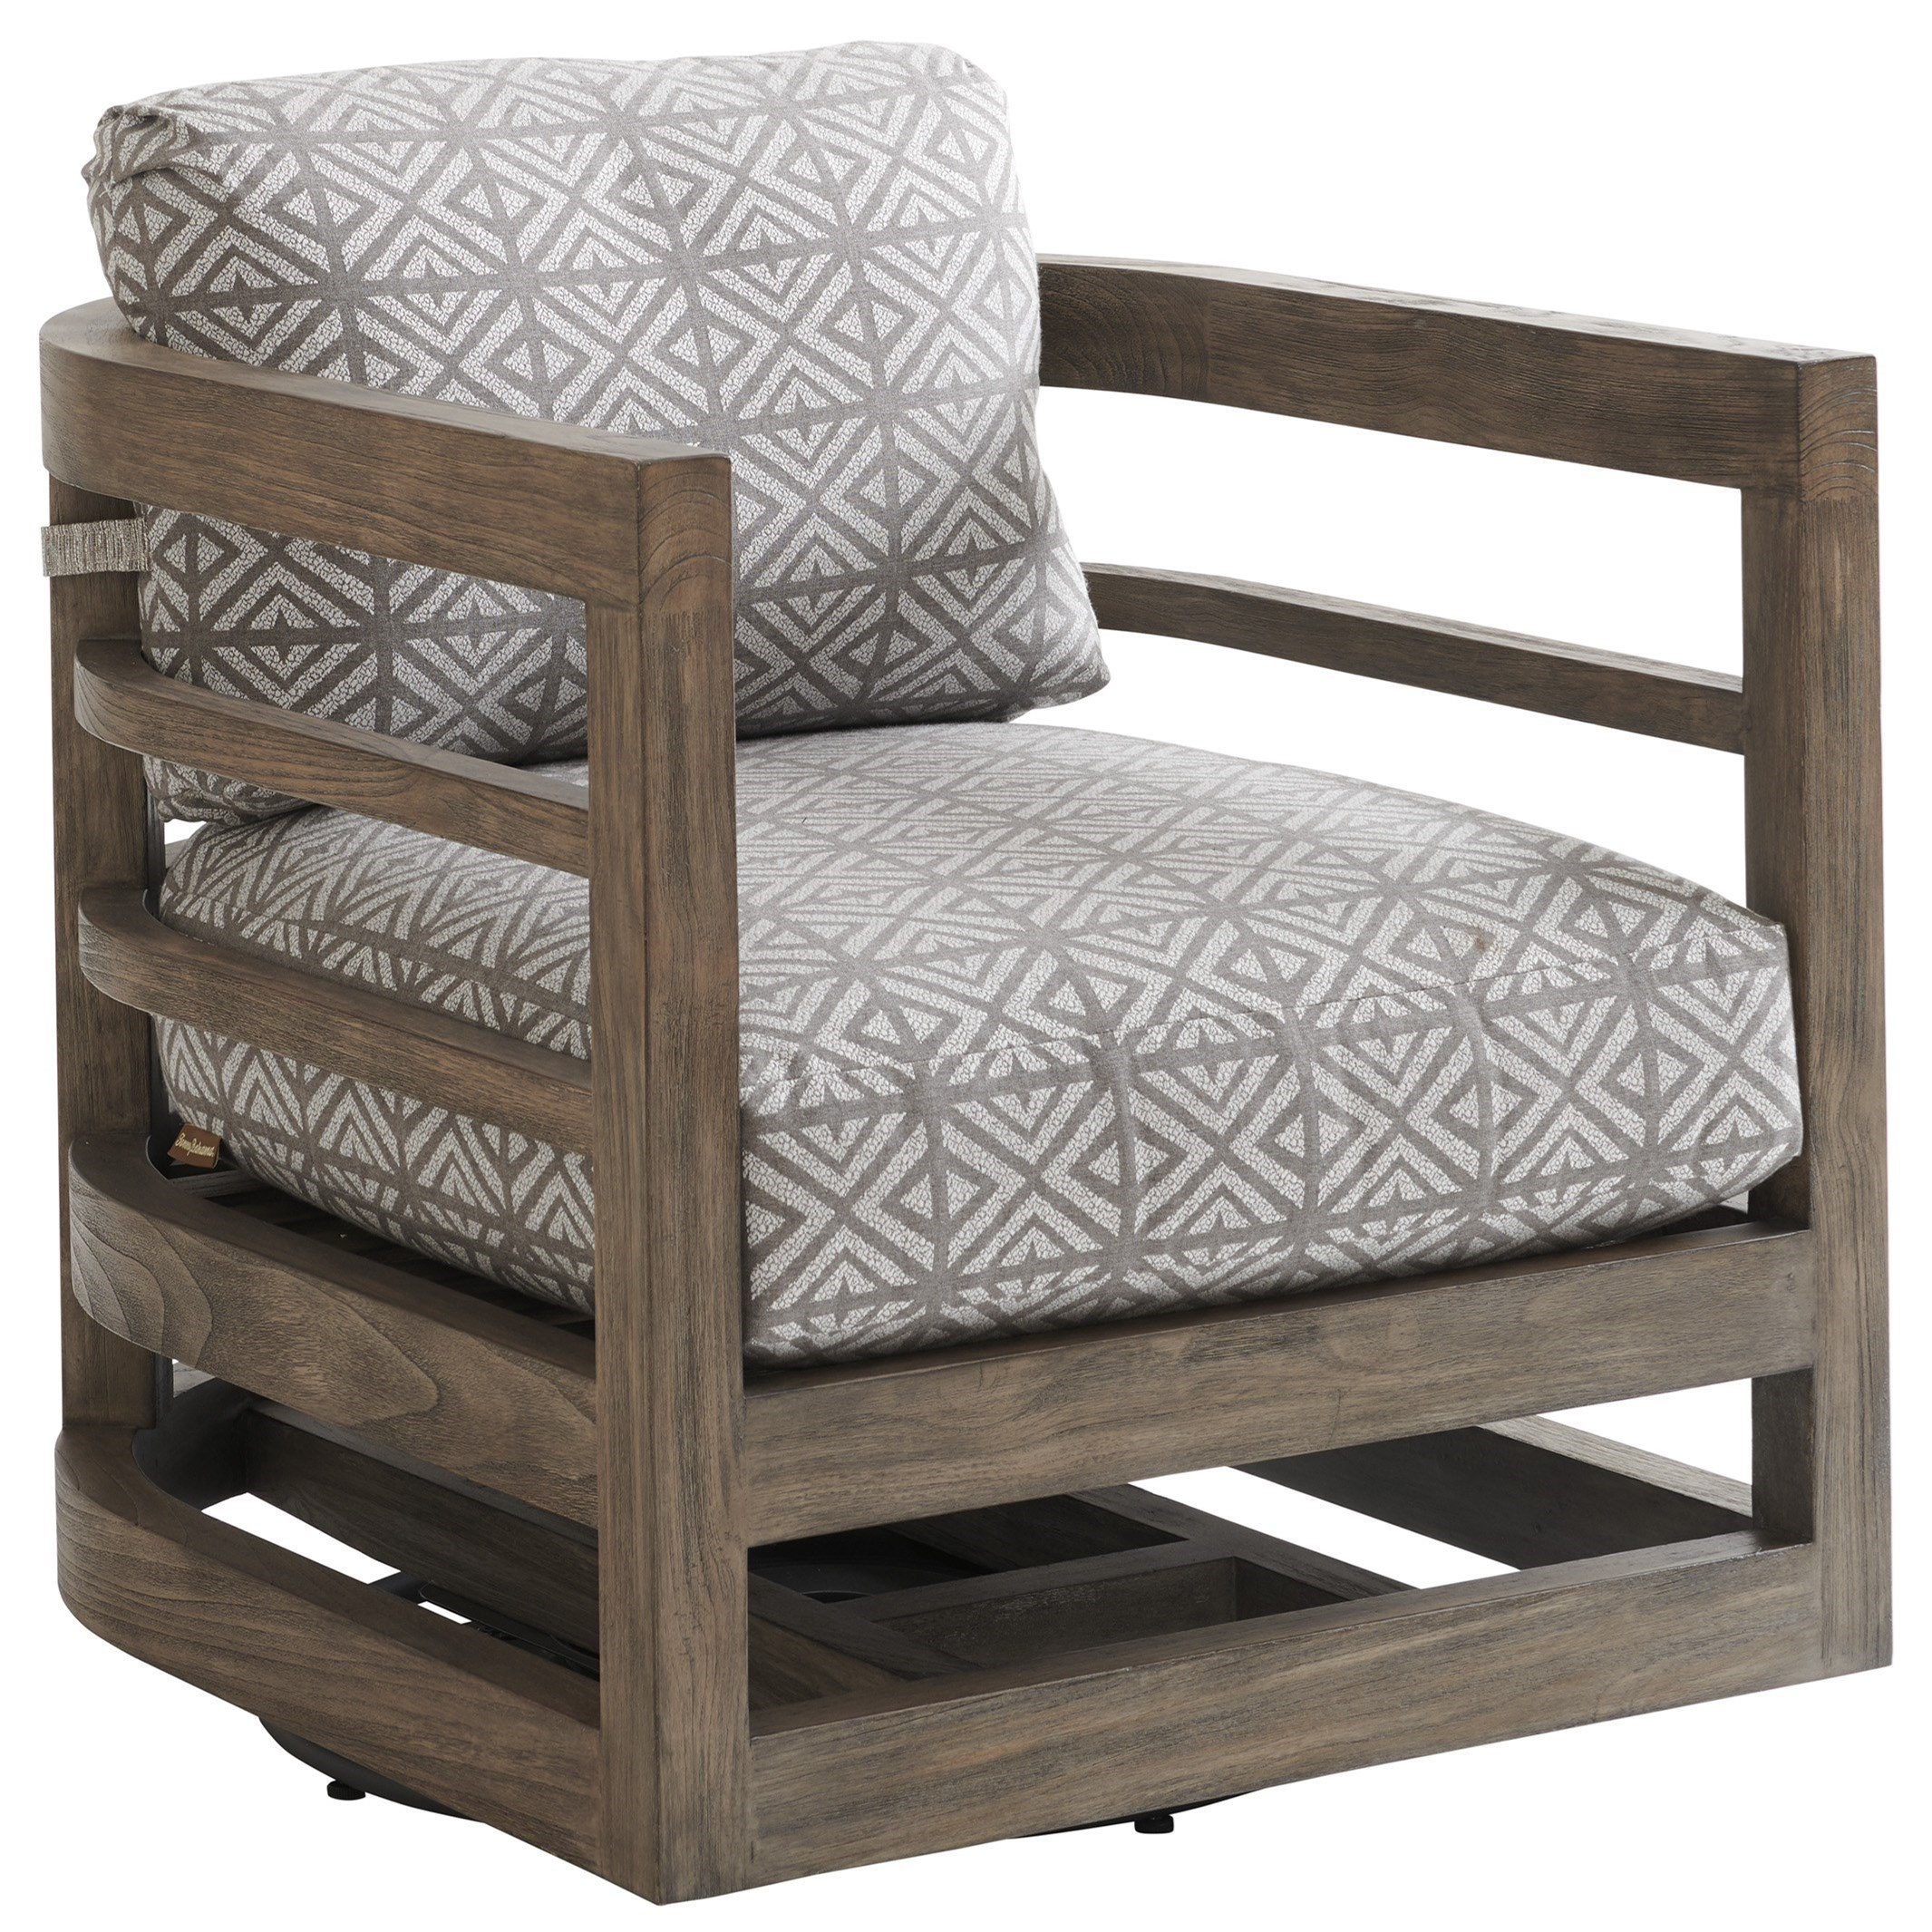 La Jolla Swivel Chair by Tommy Bahama Outdoor Living at Baer's Furniture